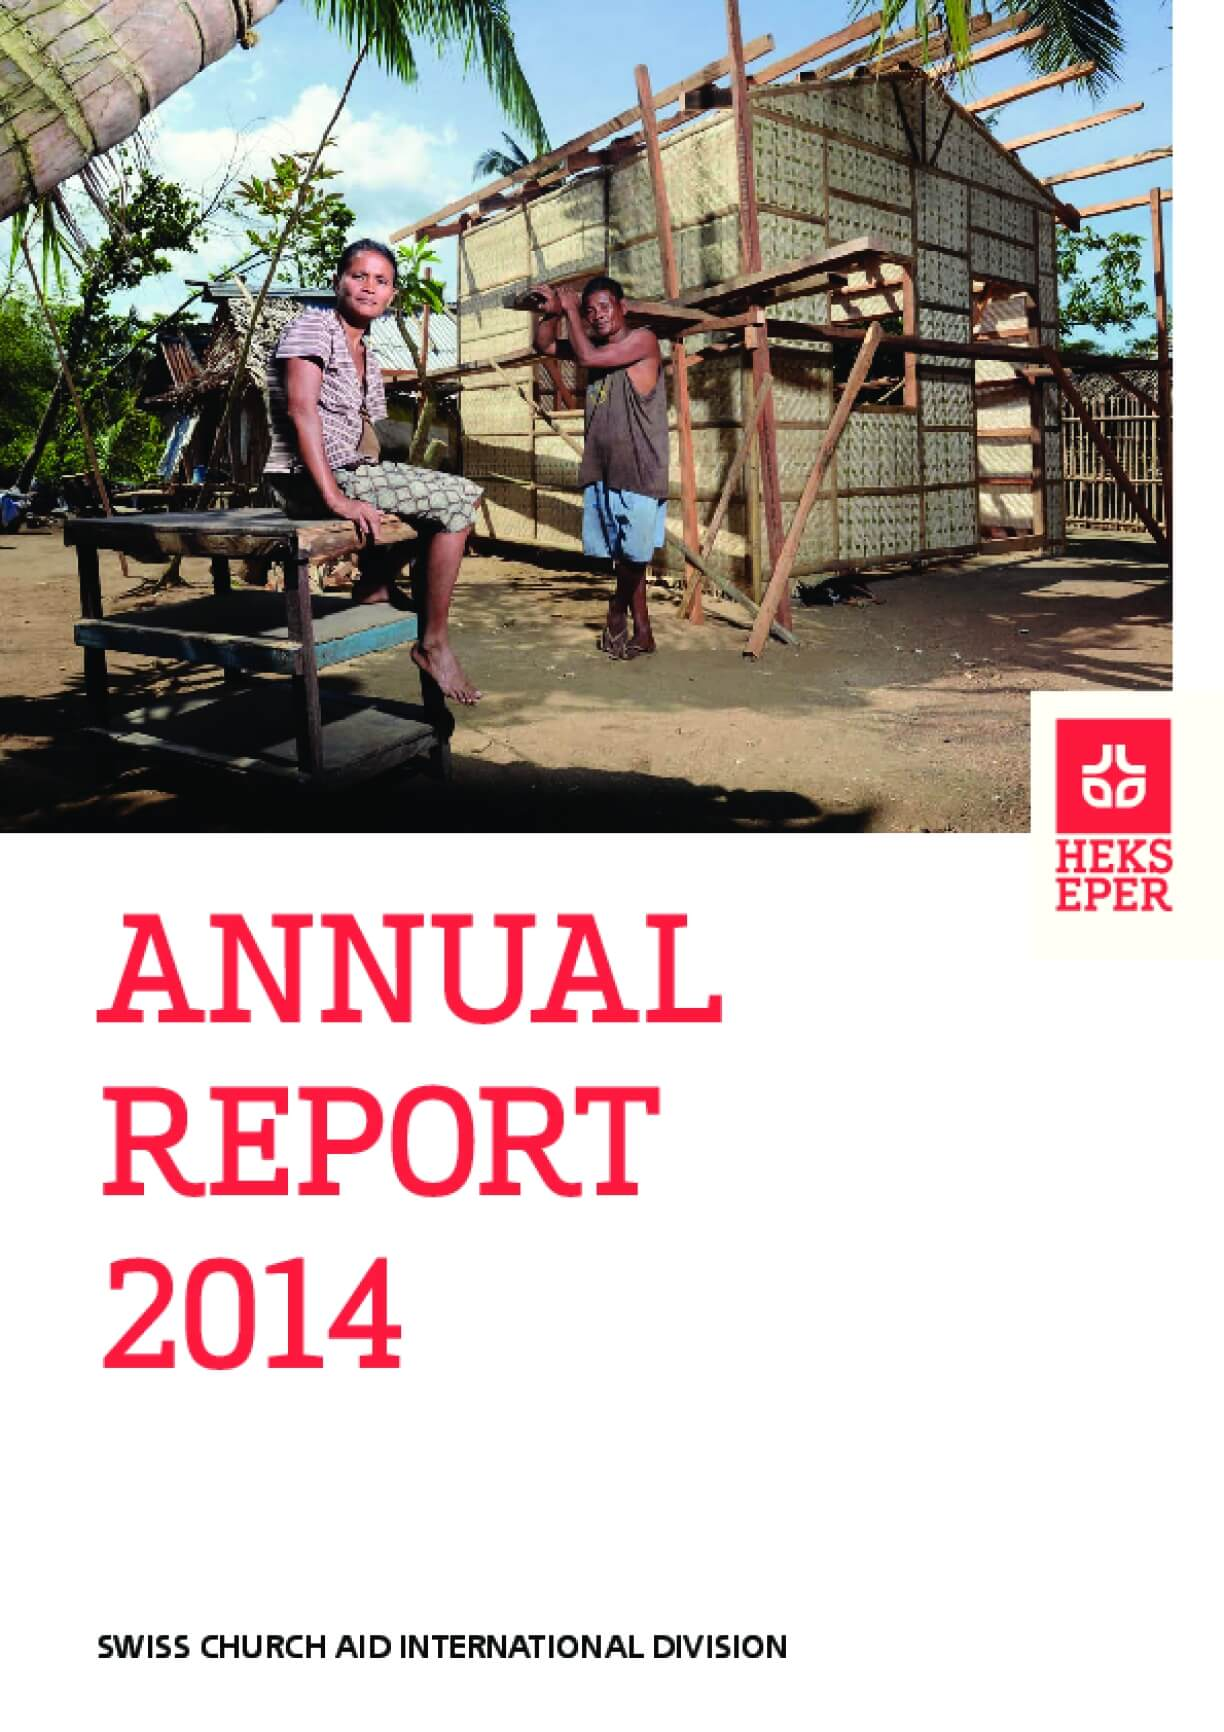 HEKS-EPER Annual Report 2014